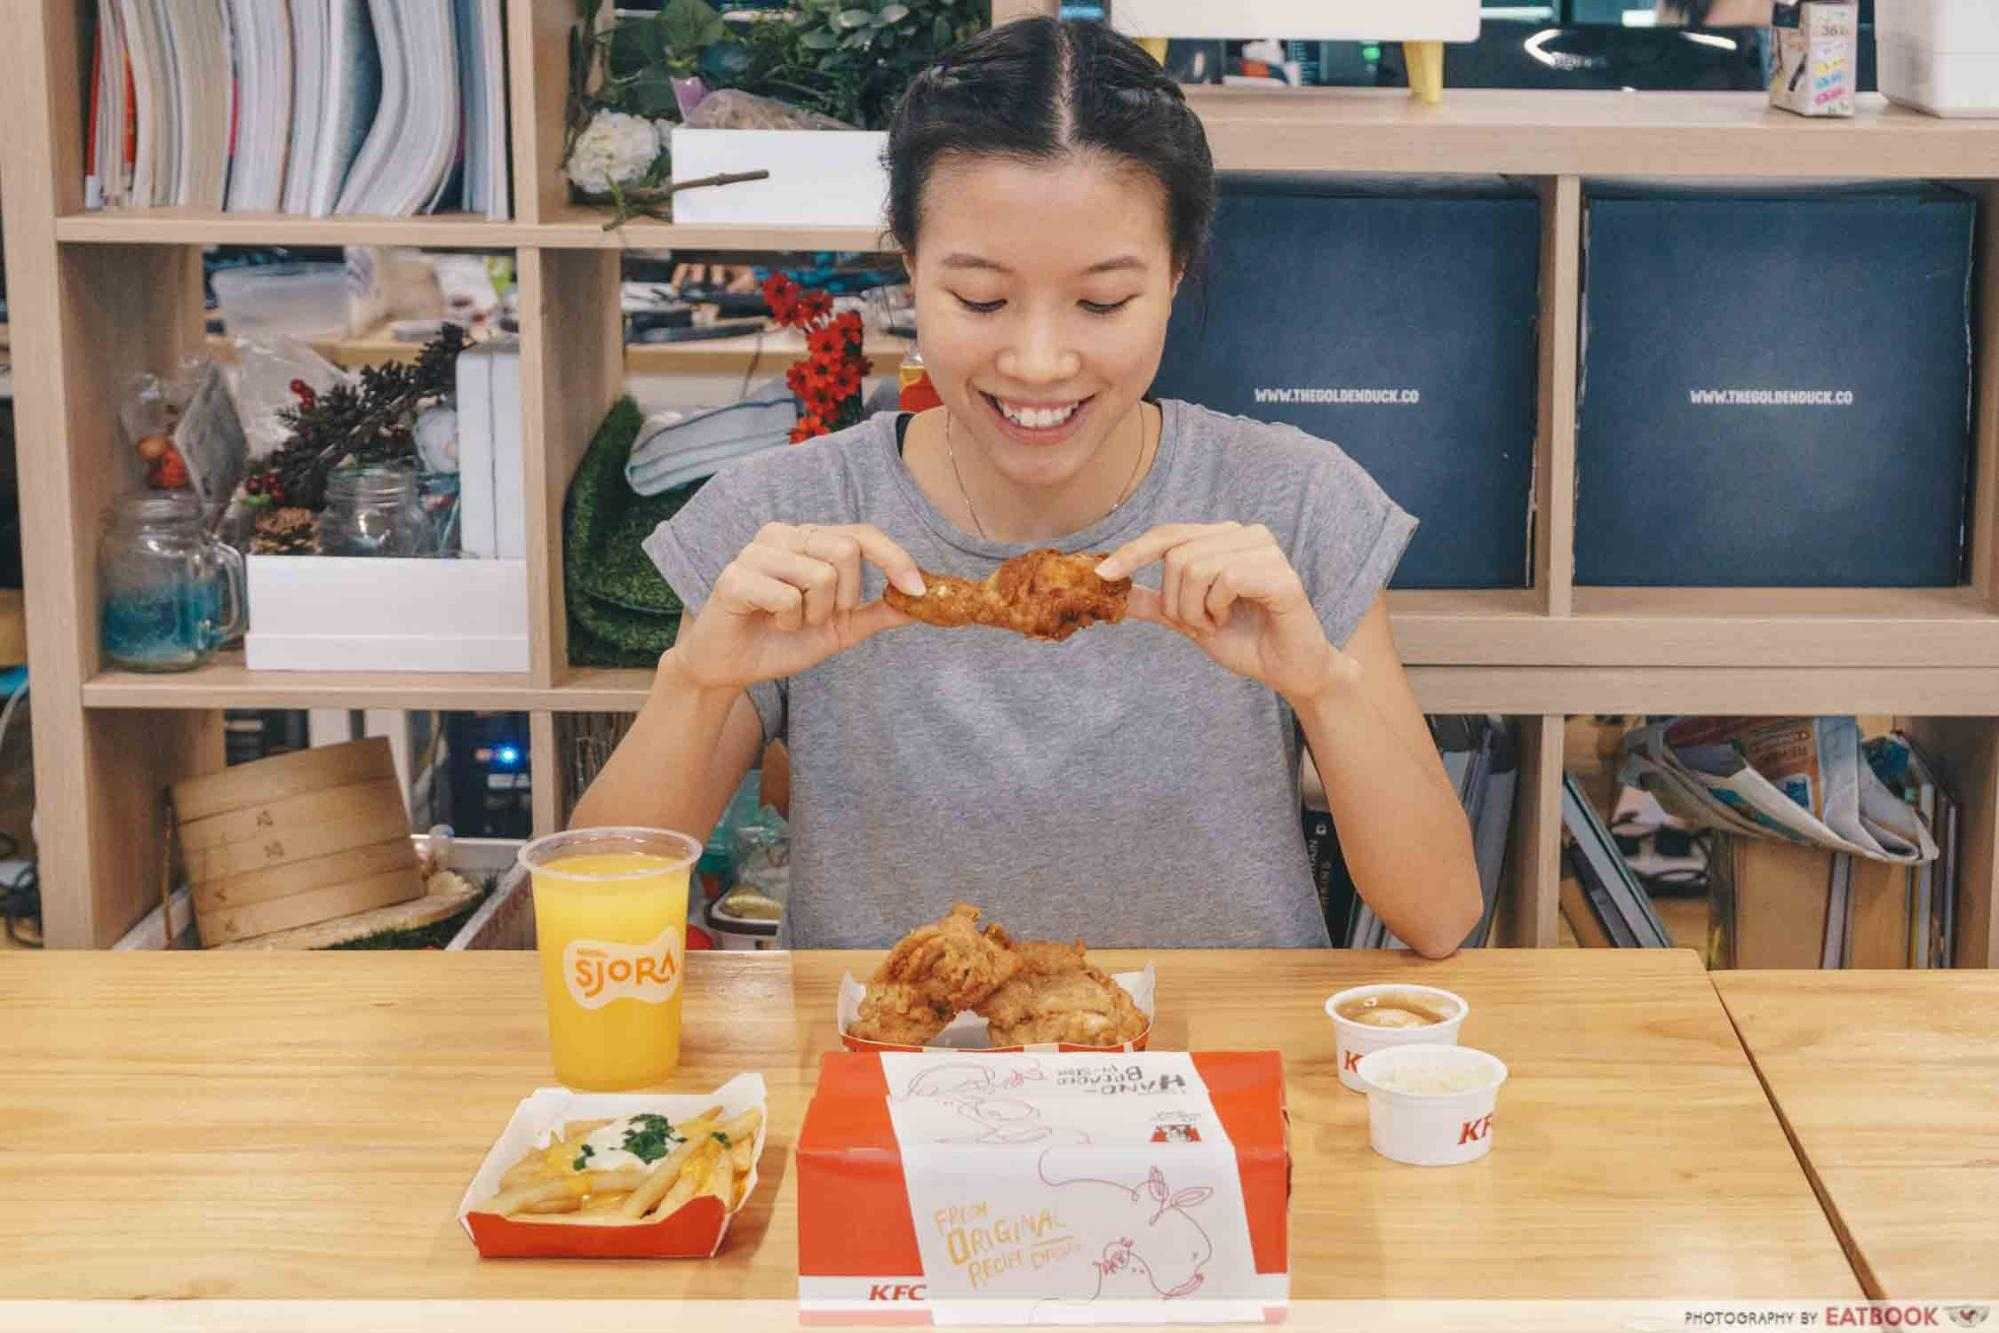 A girl eating KFC food